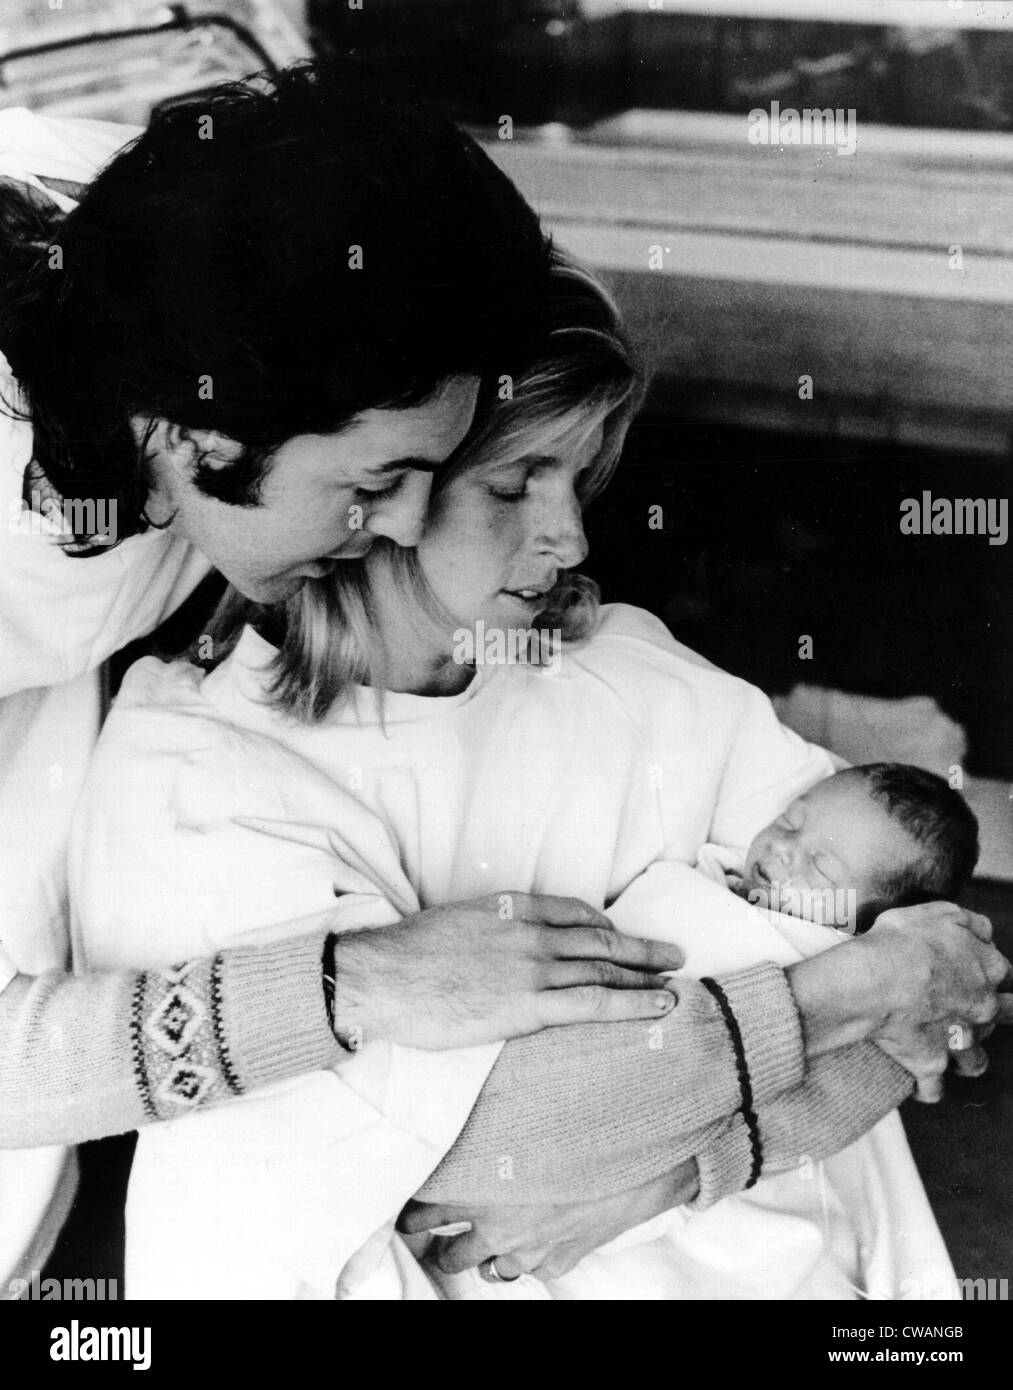 Paul and Linda McCartney with newborn daughter Stella, September 17, 1971. Courtesy: CSU Archives / Everett Collection - Stock Image